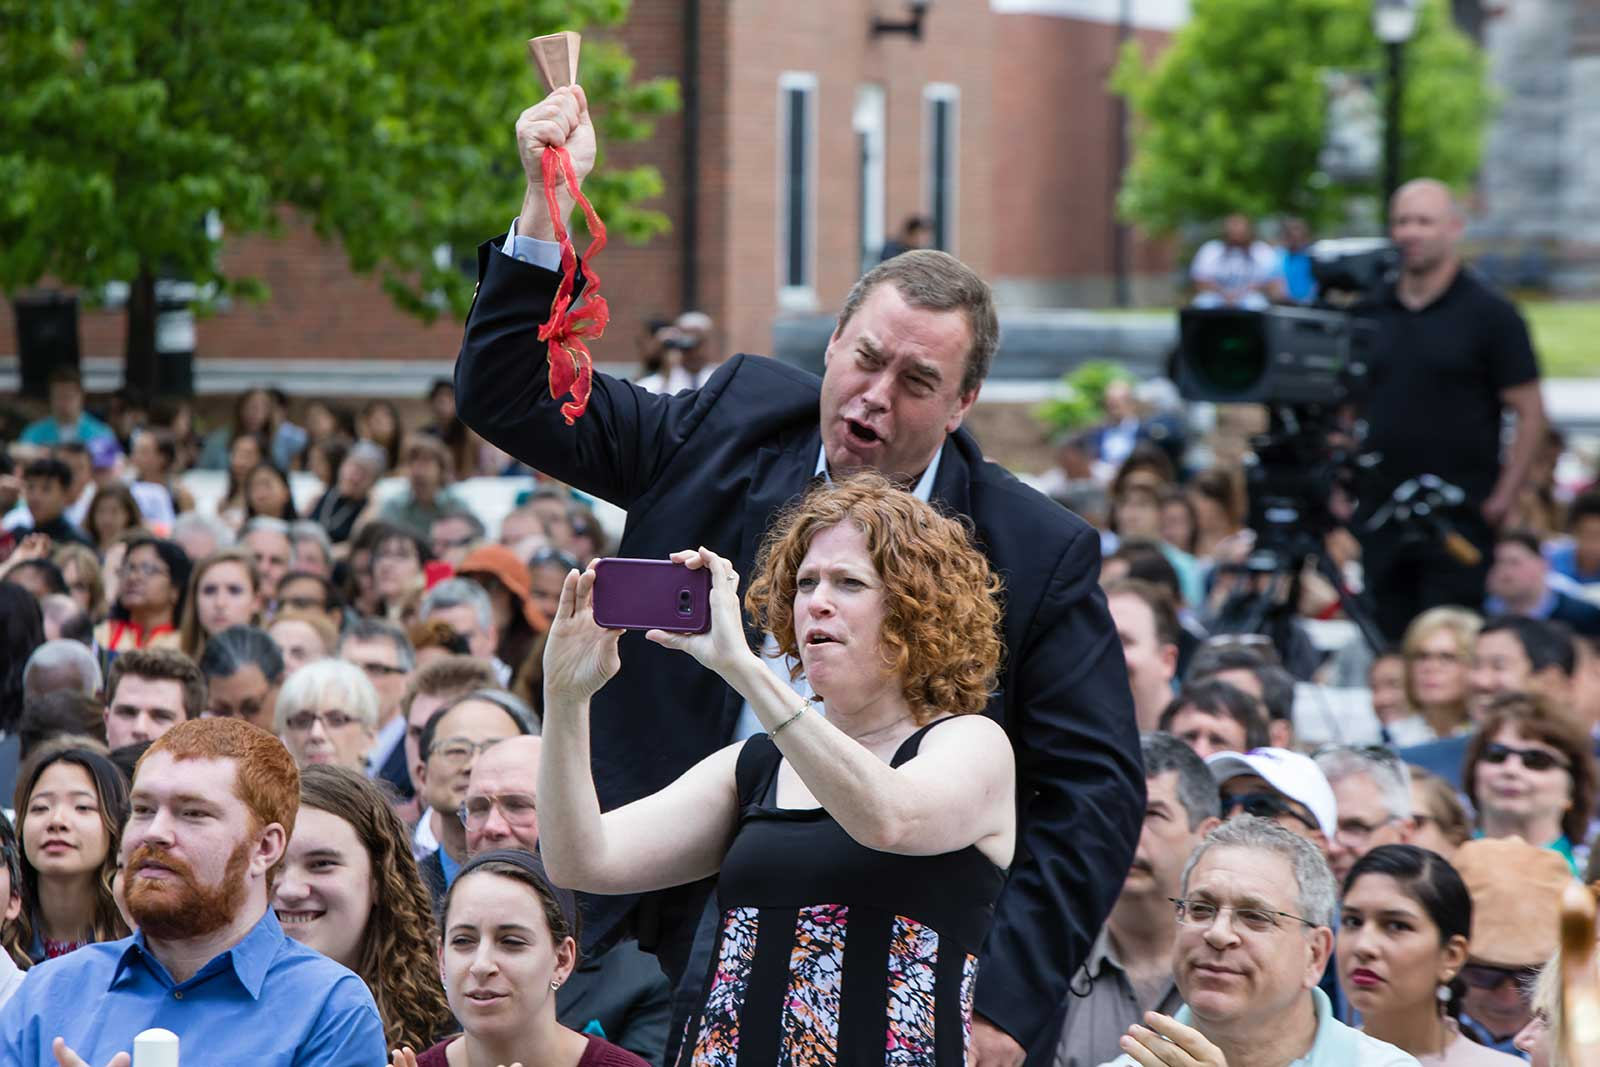 Family members taking photos during Commencement